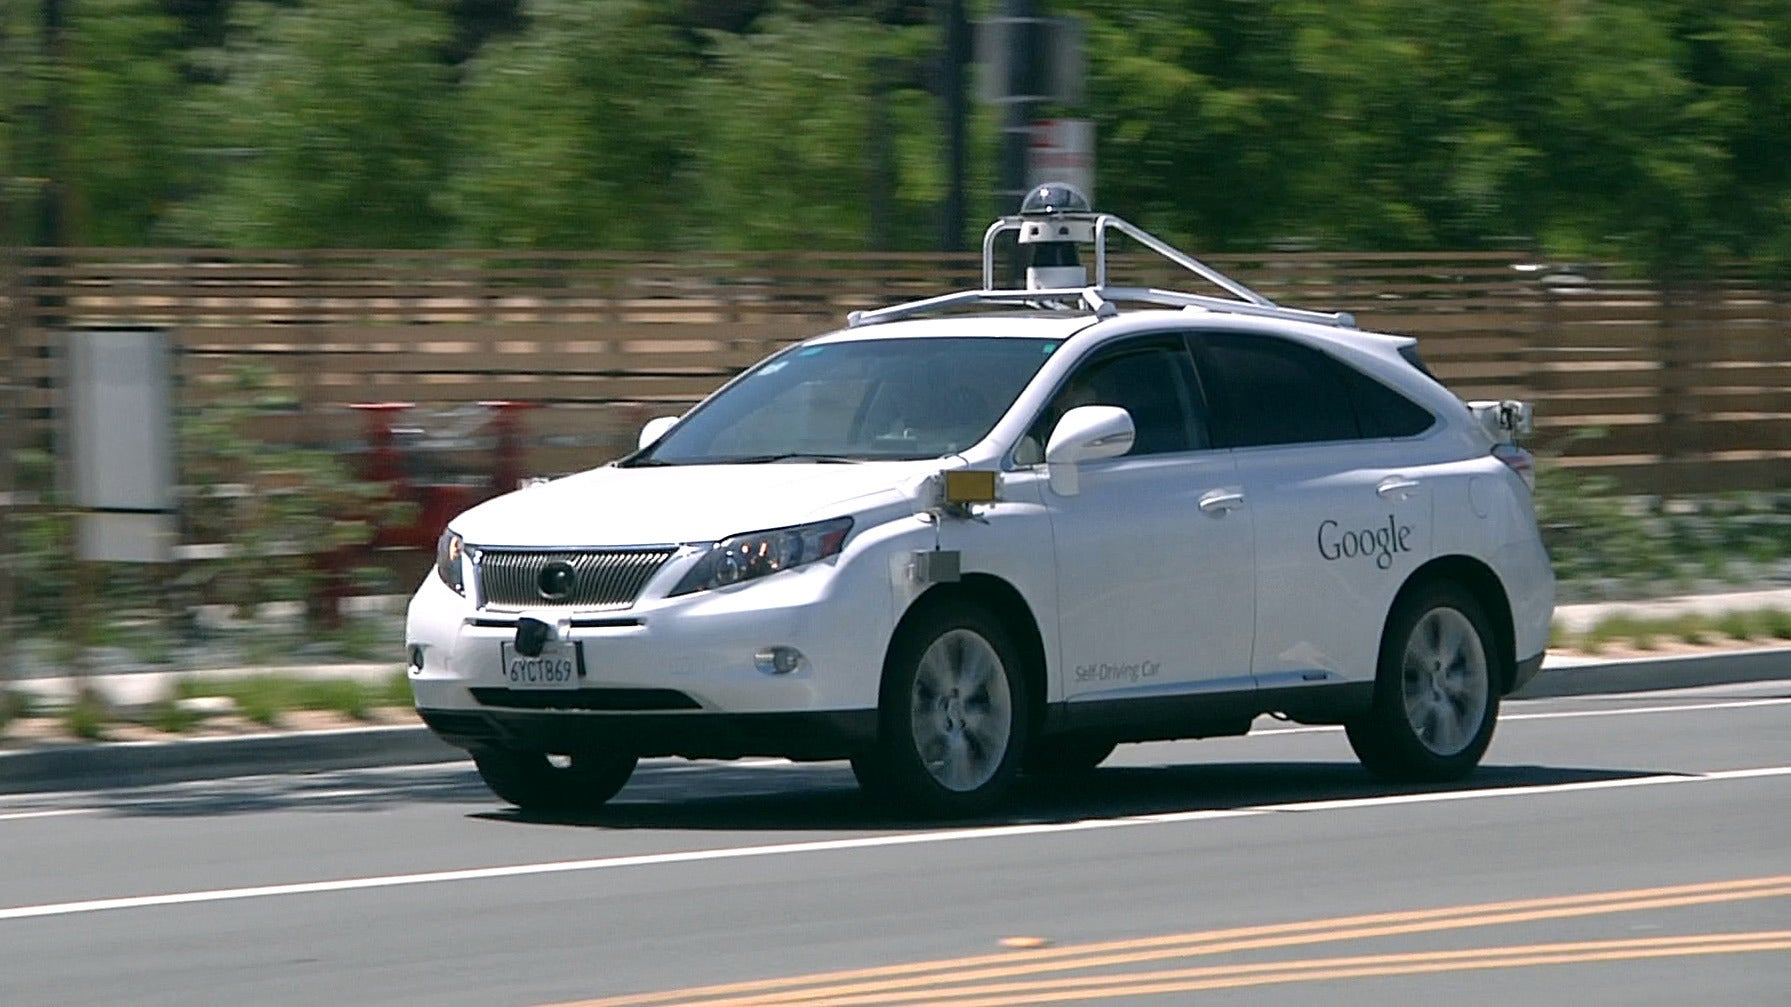 googles self driving car Google's self-driving cars don't have a flawless safety record, but it's clearer than  ever that careless human drivers remain the greater threat.